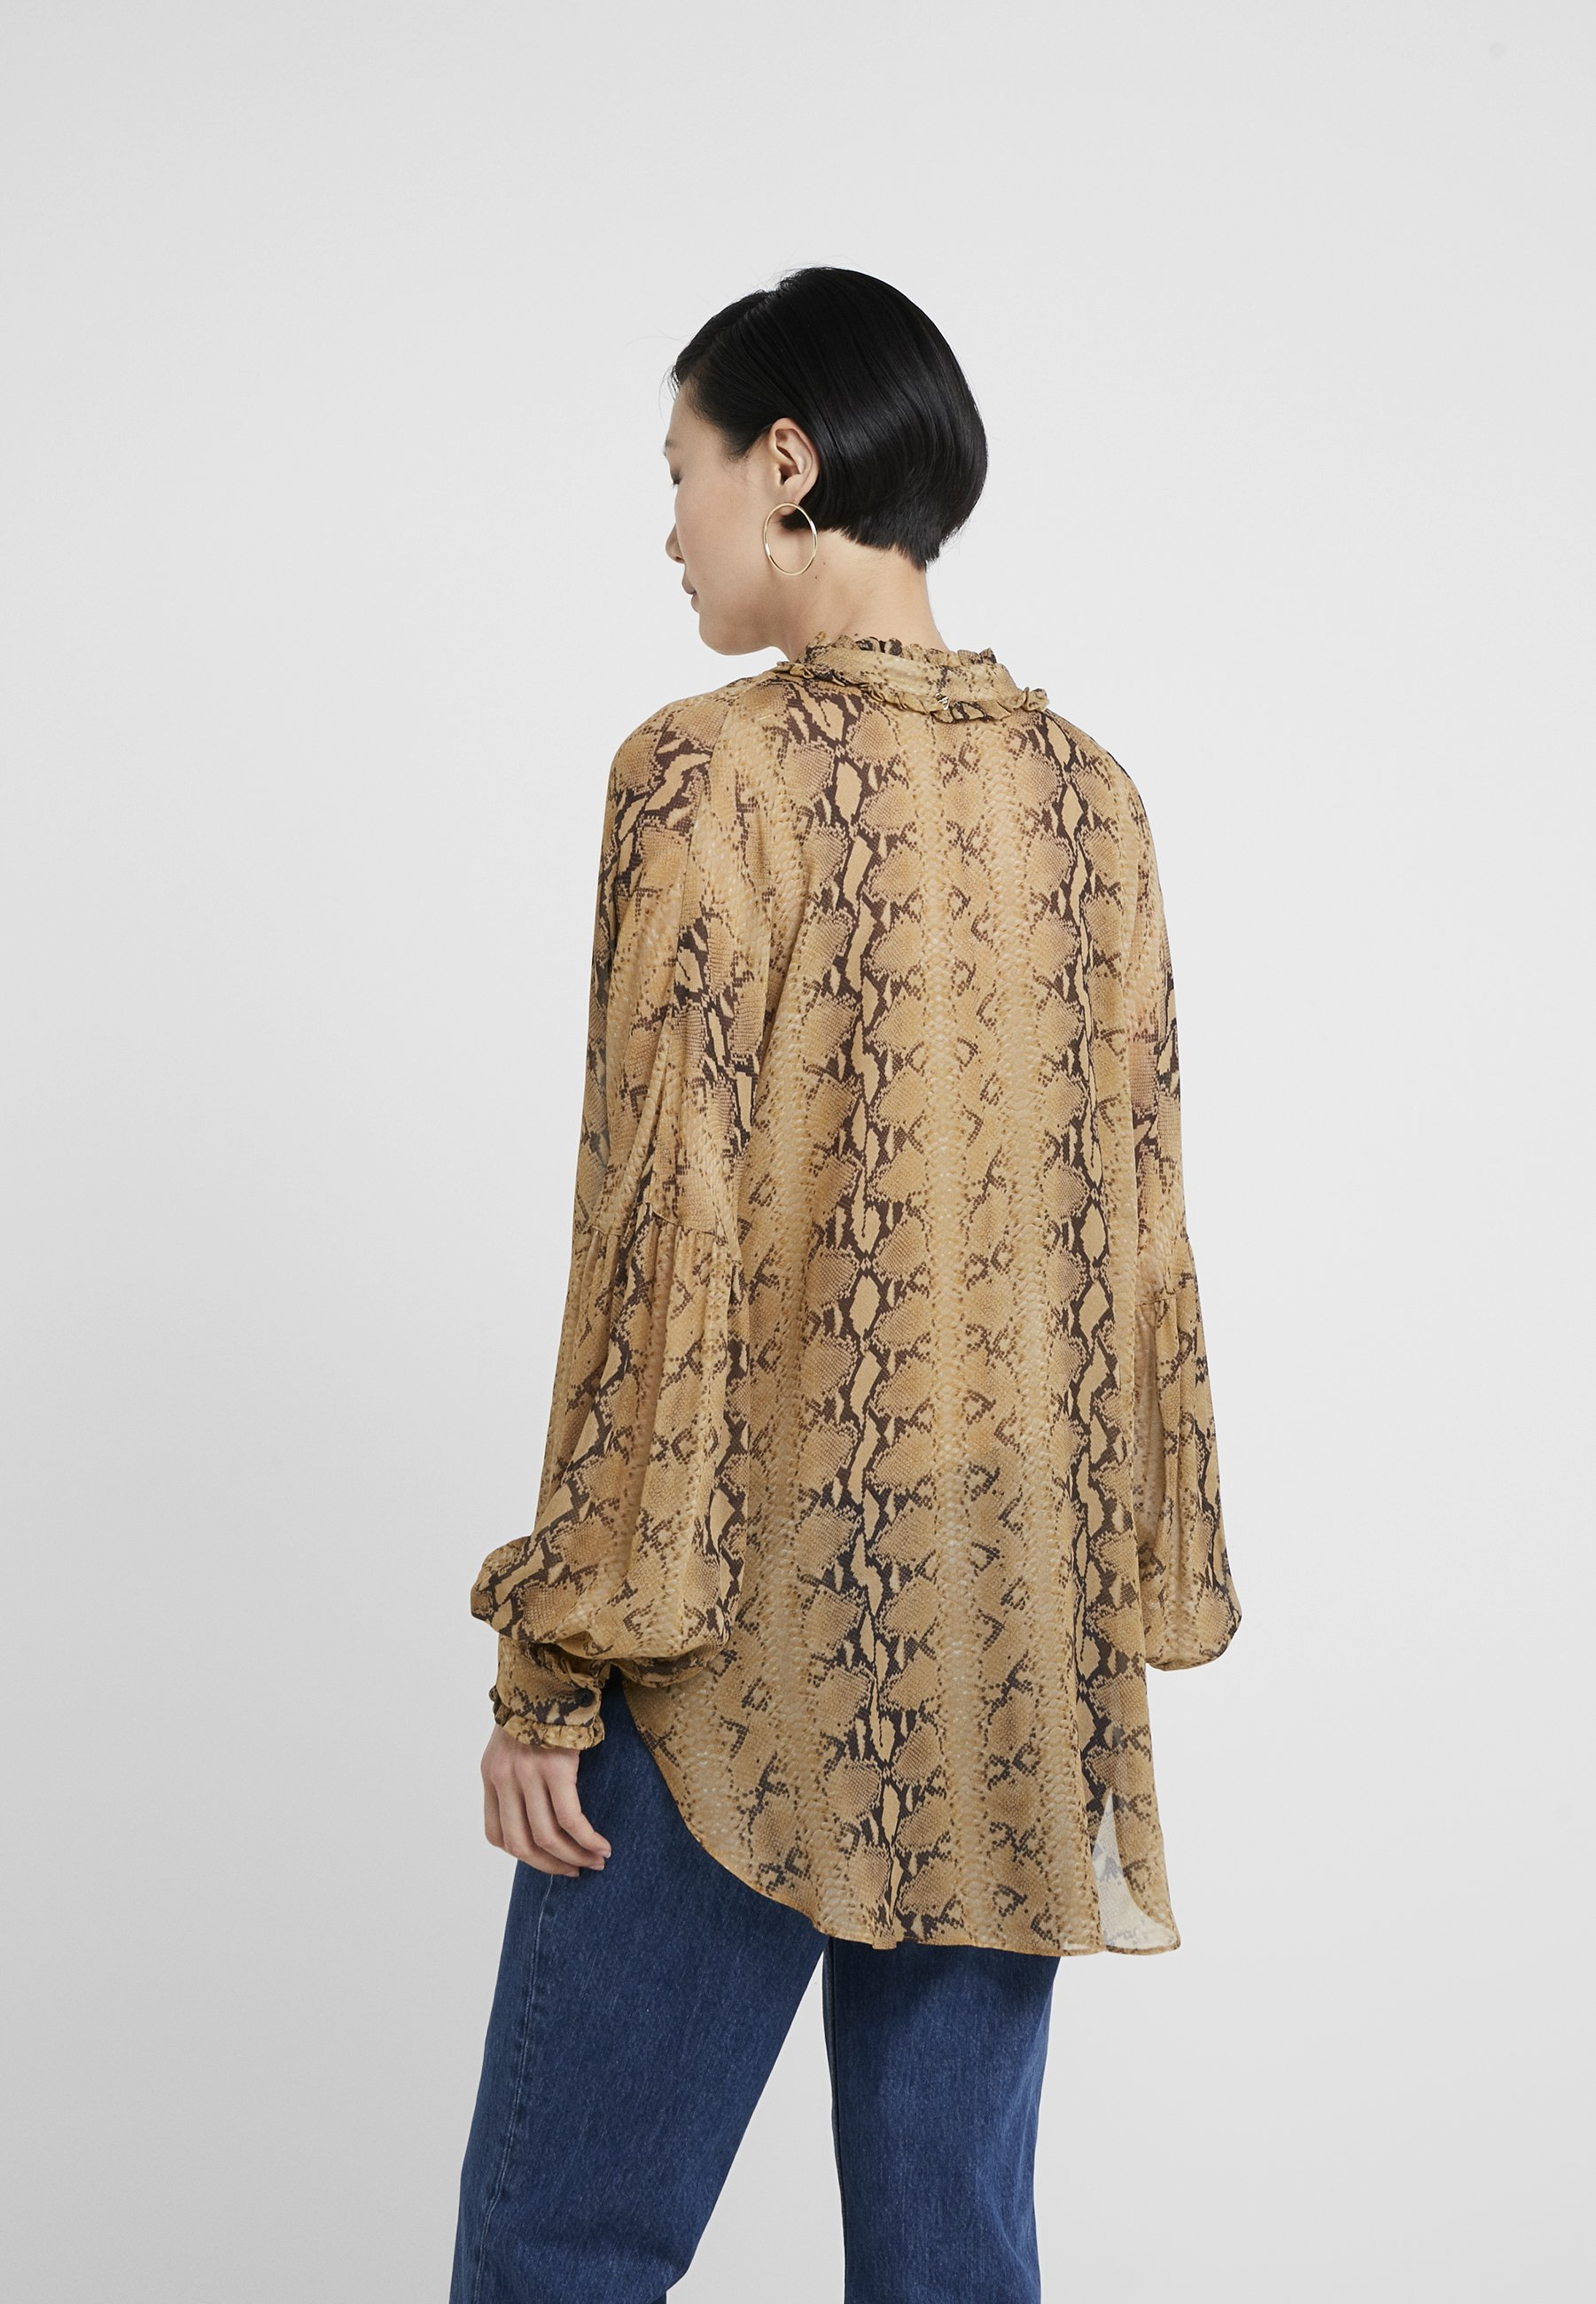 TWINSET IN TESSUTO STAMPATO - Blouse cammello